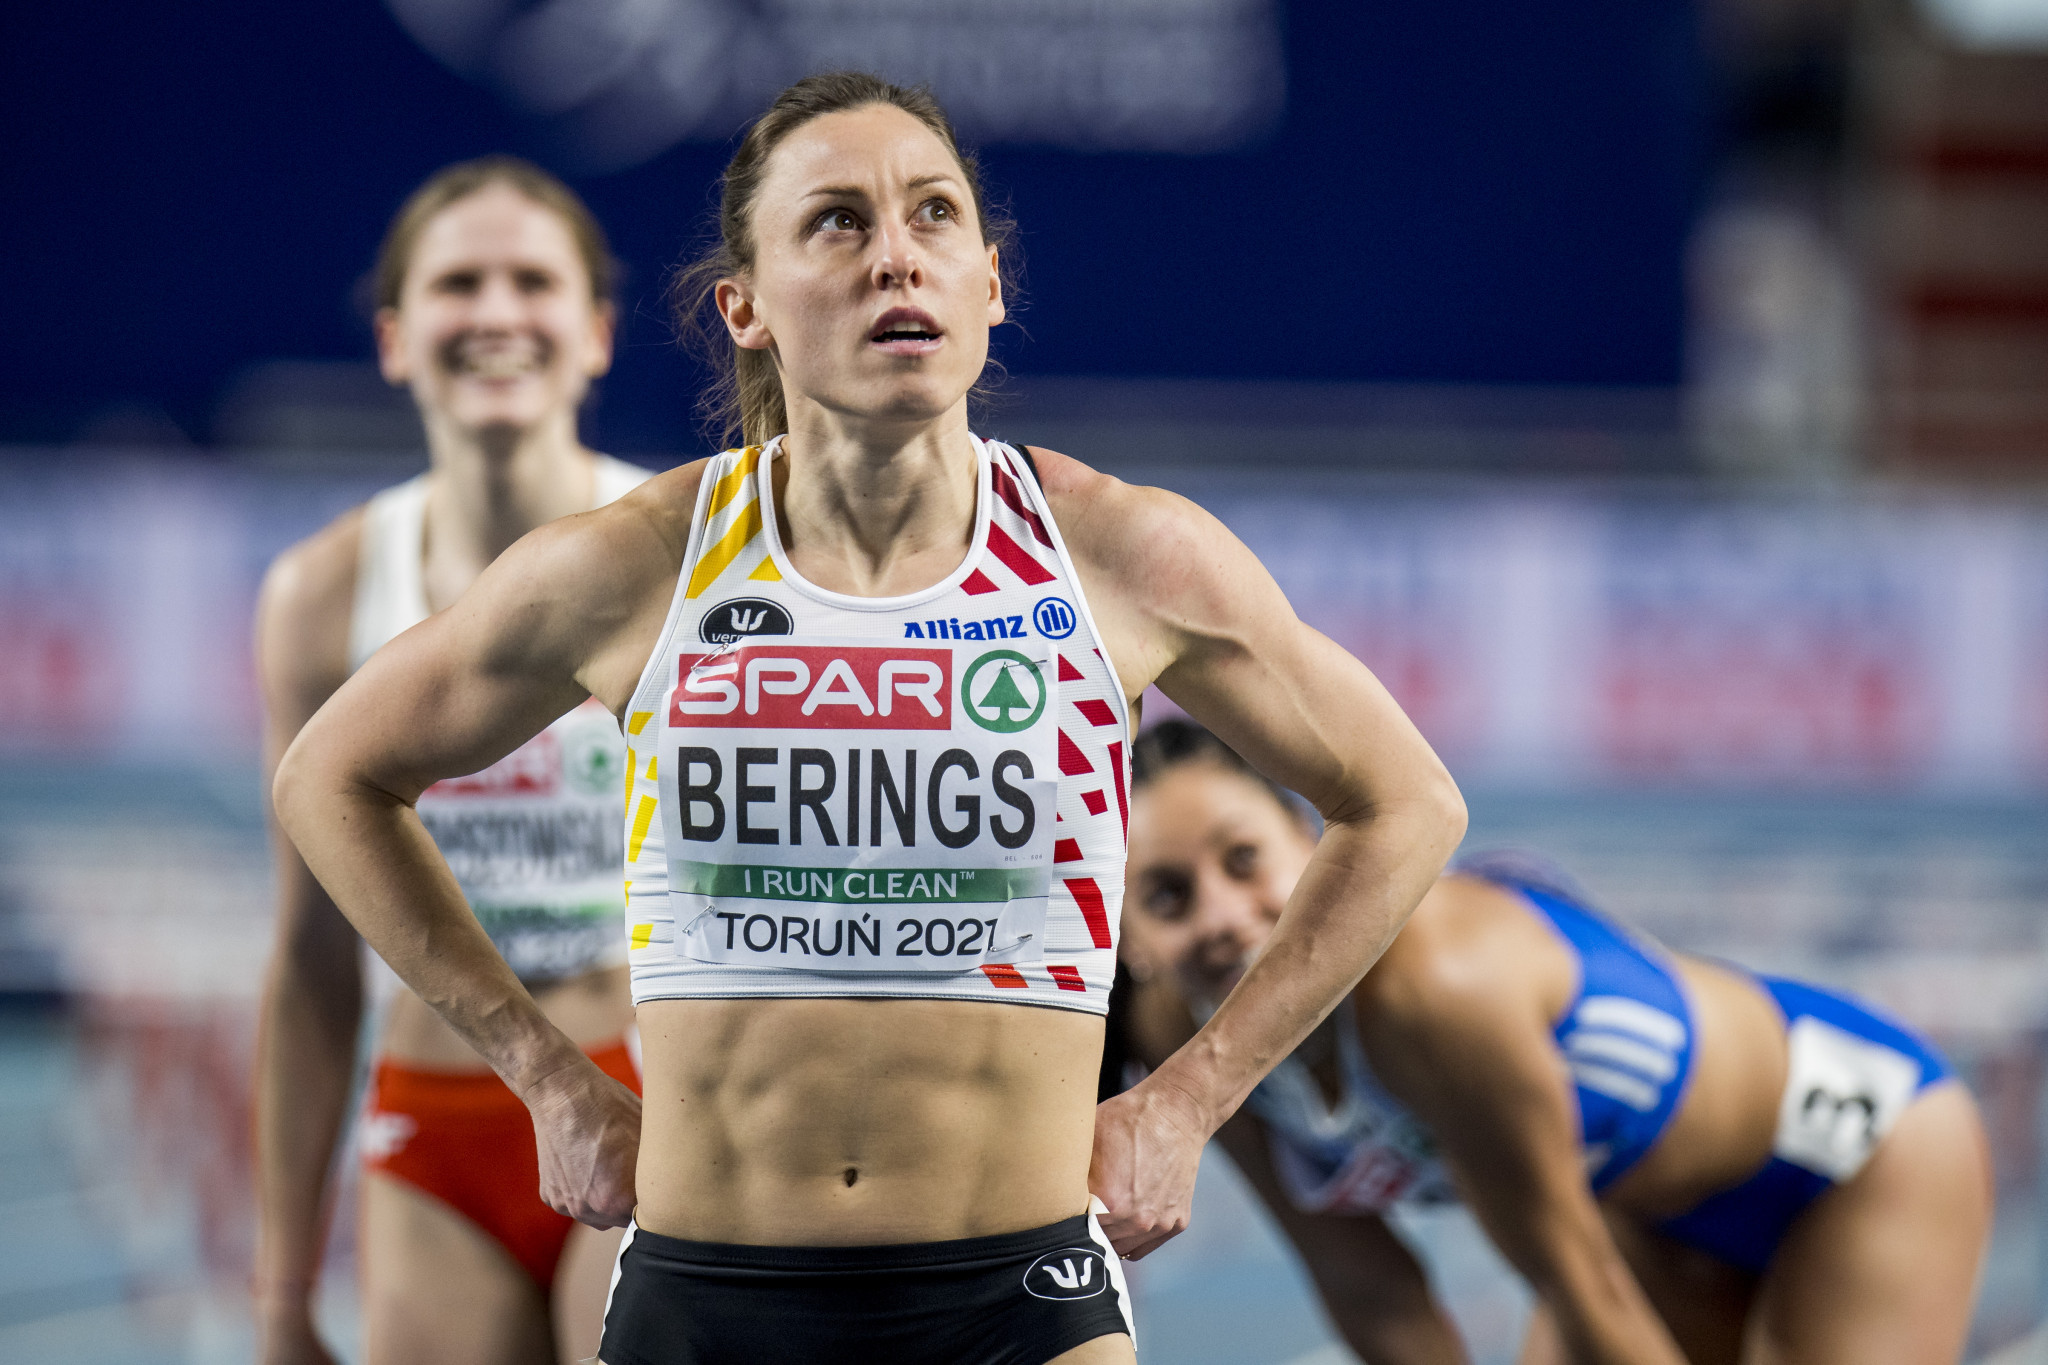 Berings questions COVID-19 testing system at European Athletics Indoor Championships after false positive